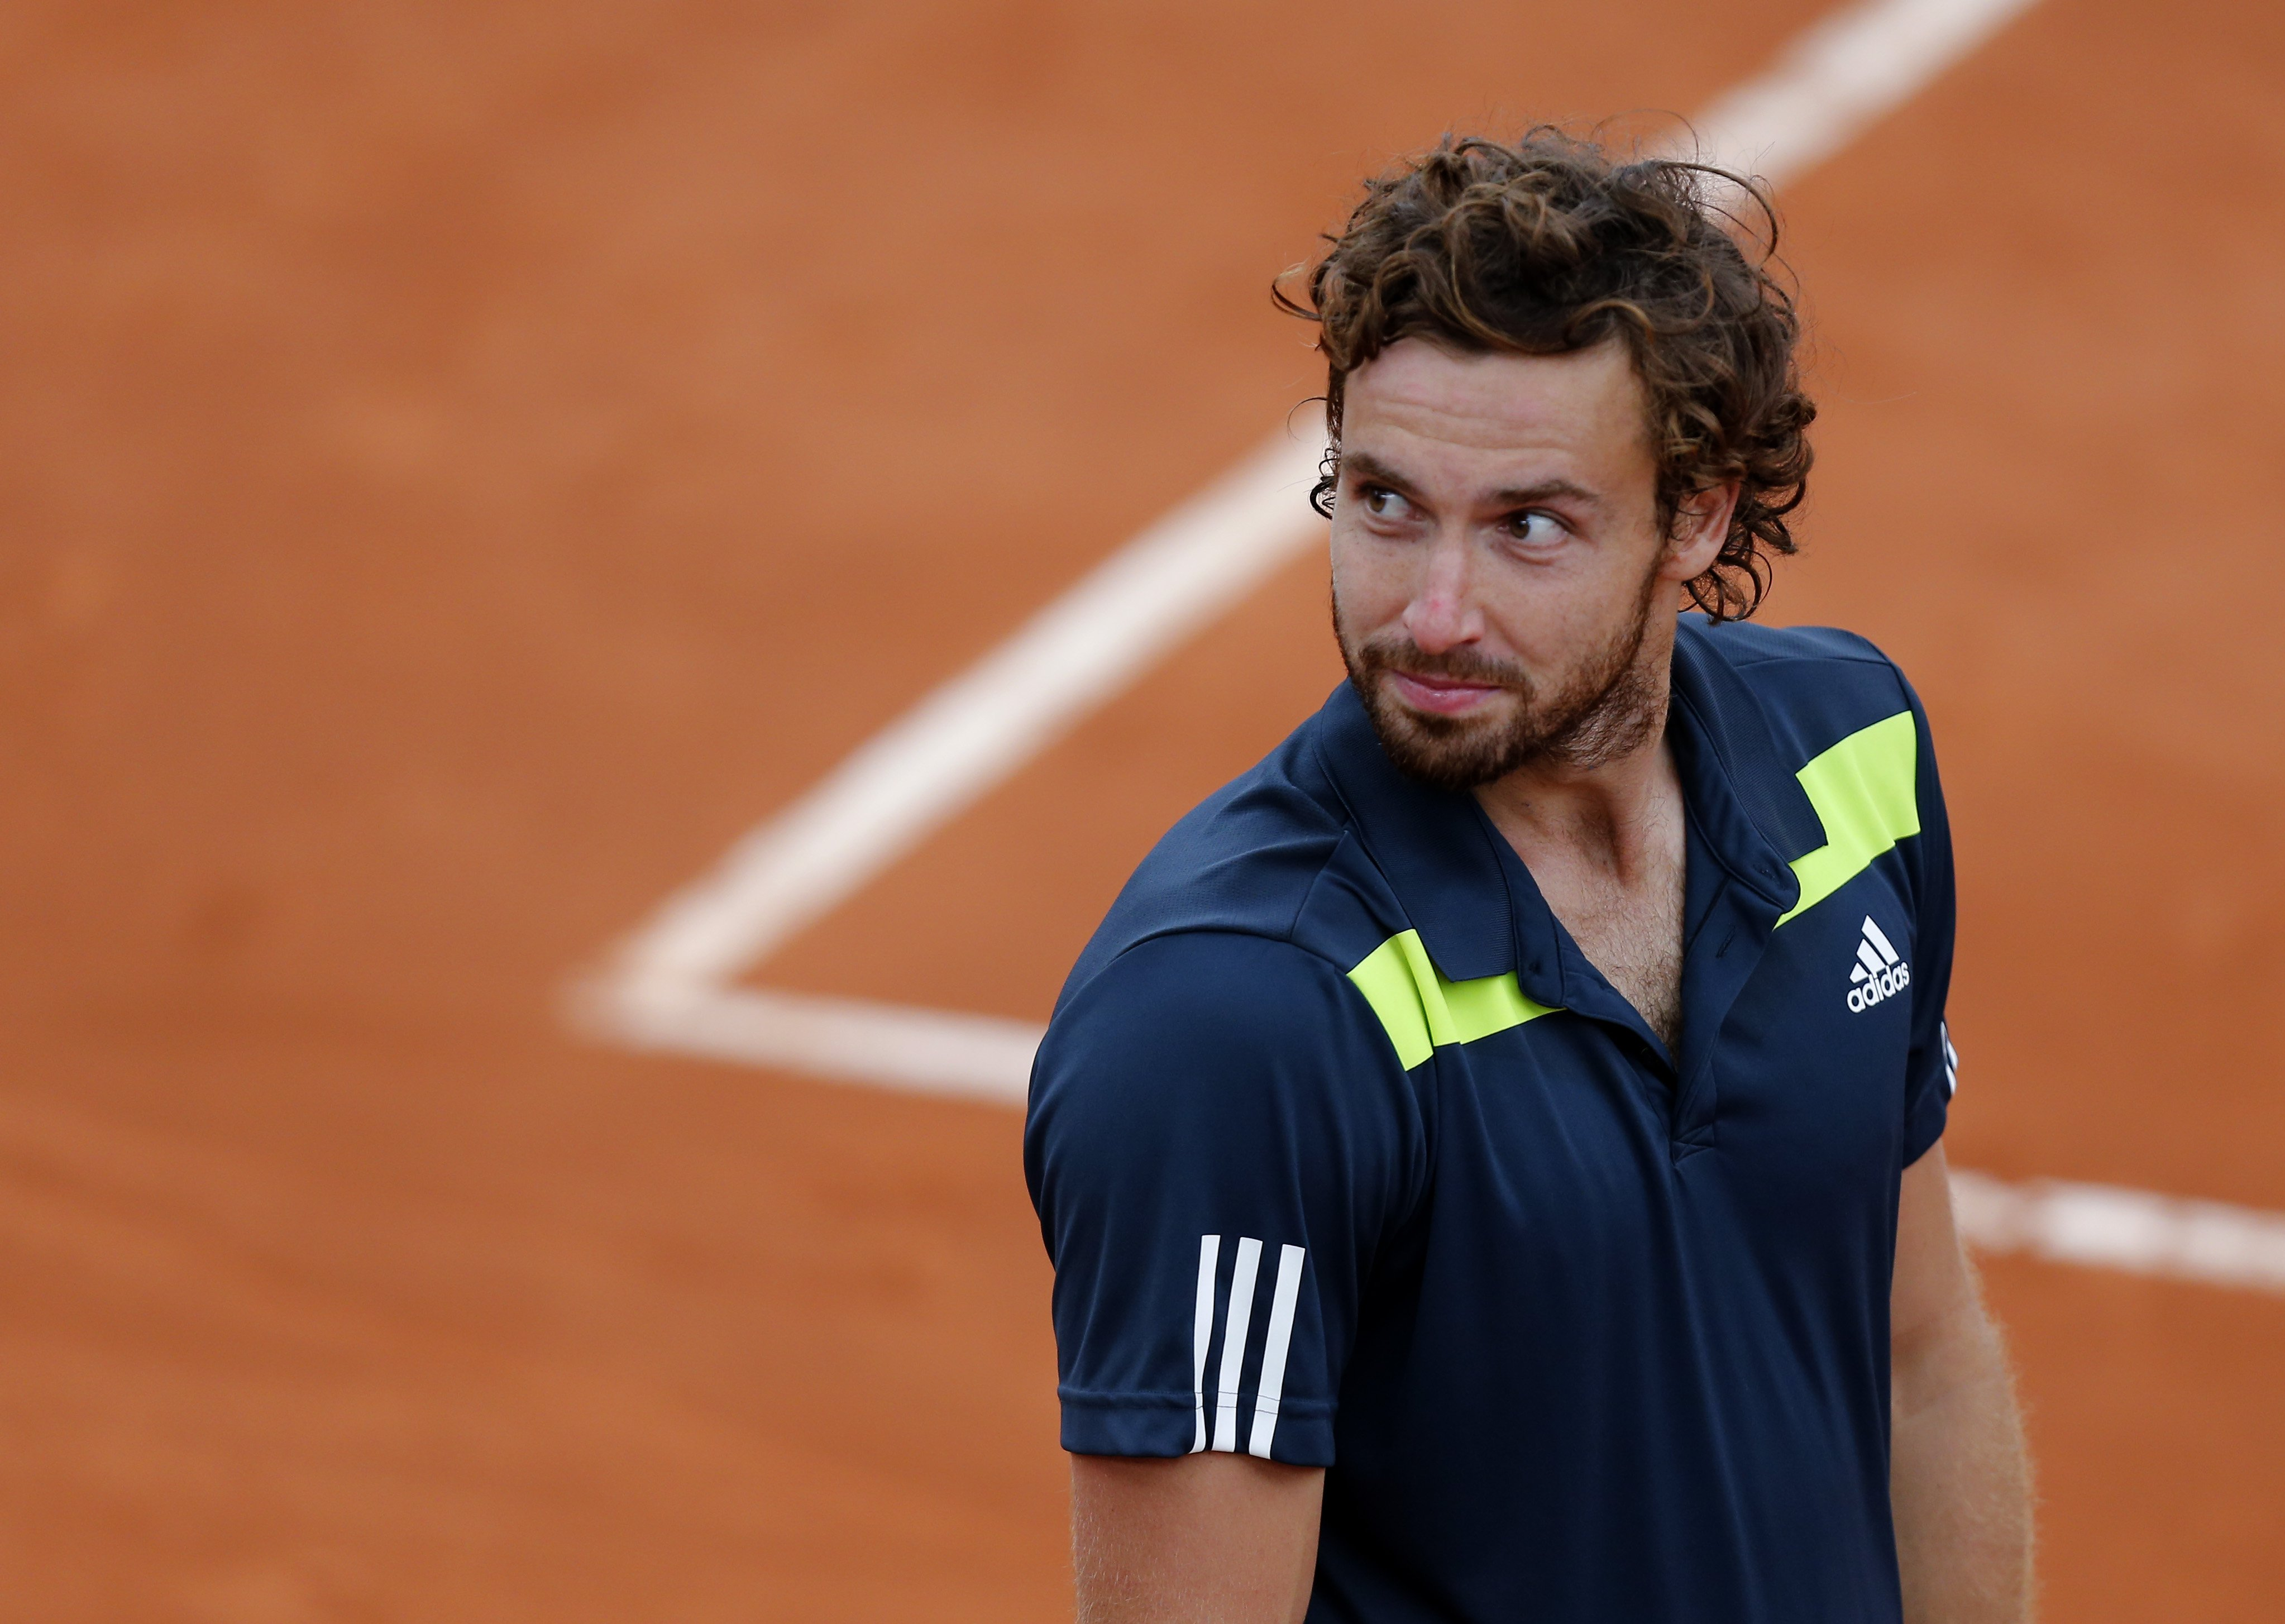 Ernests Gulbis earned a  million dollar salary, leaving the net worth at 4 million in 2017